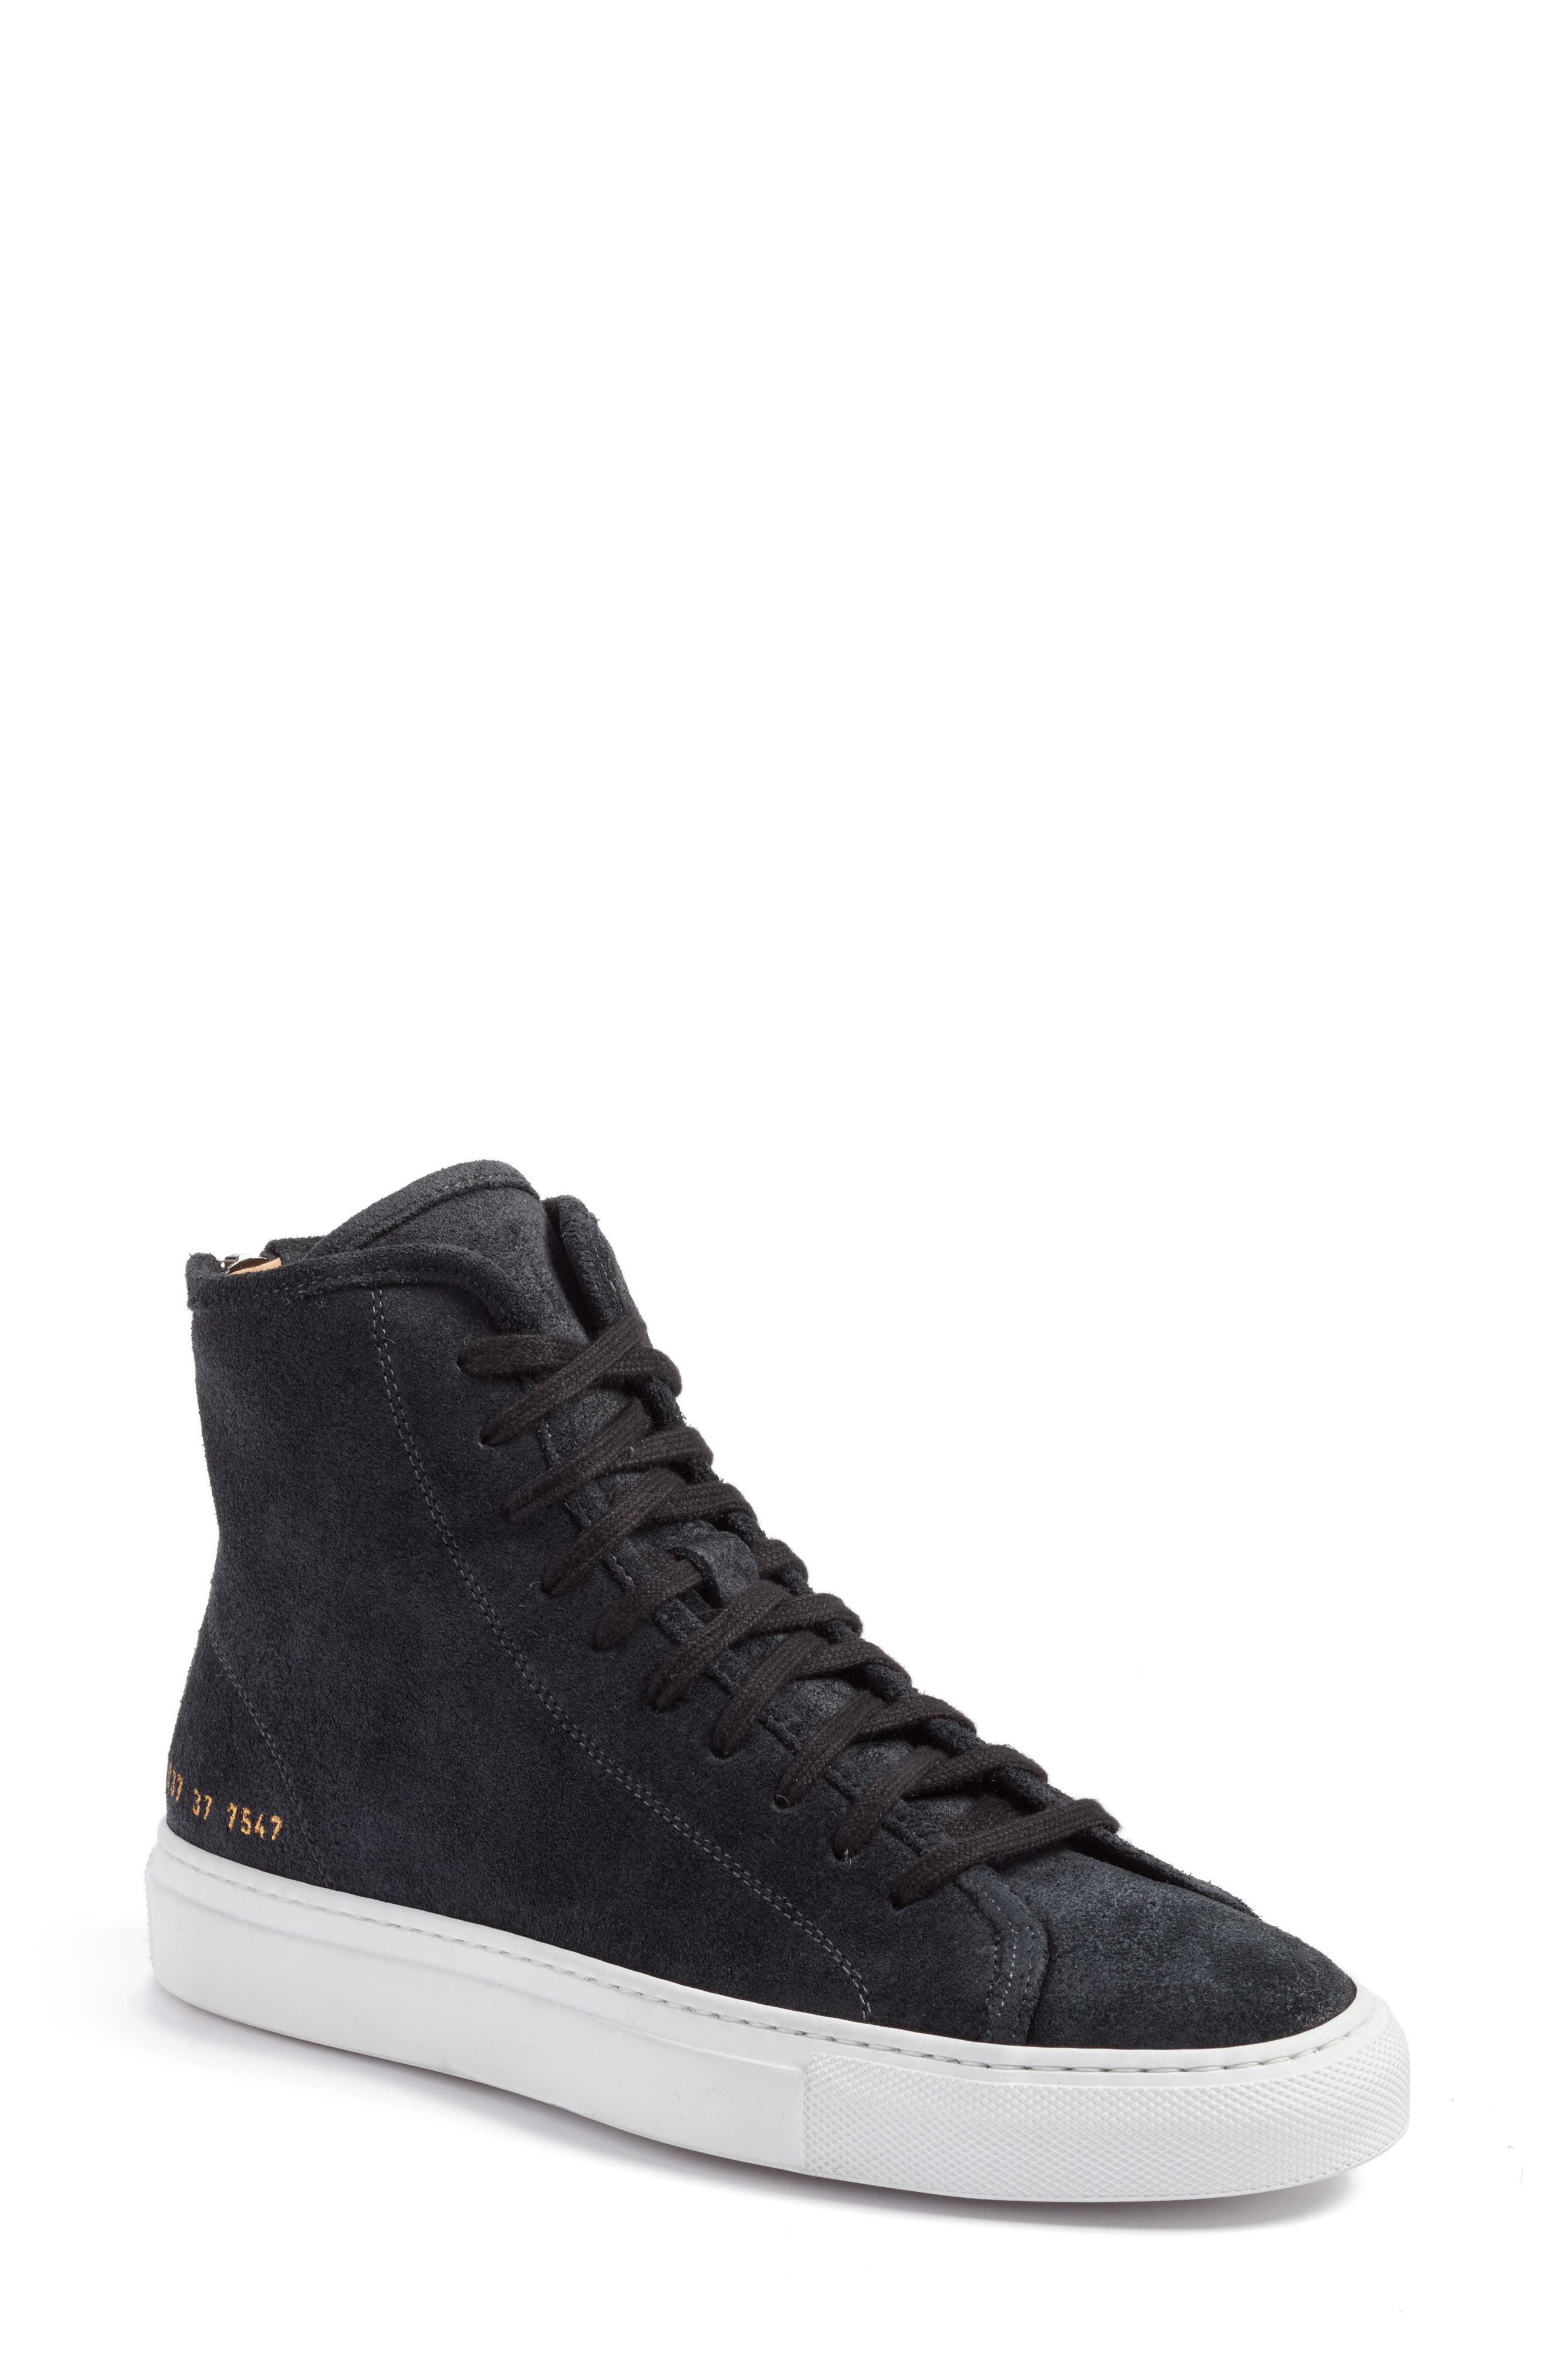 Main Image - Common Projects Tournament High Top Sneakers (Women)